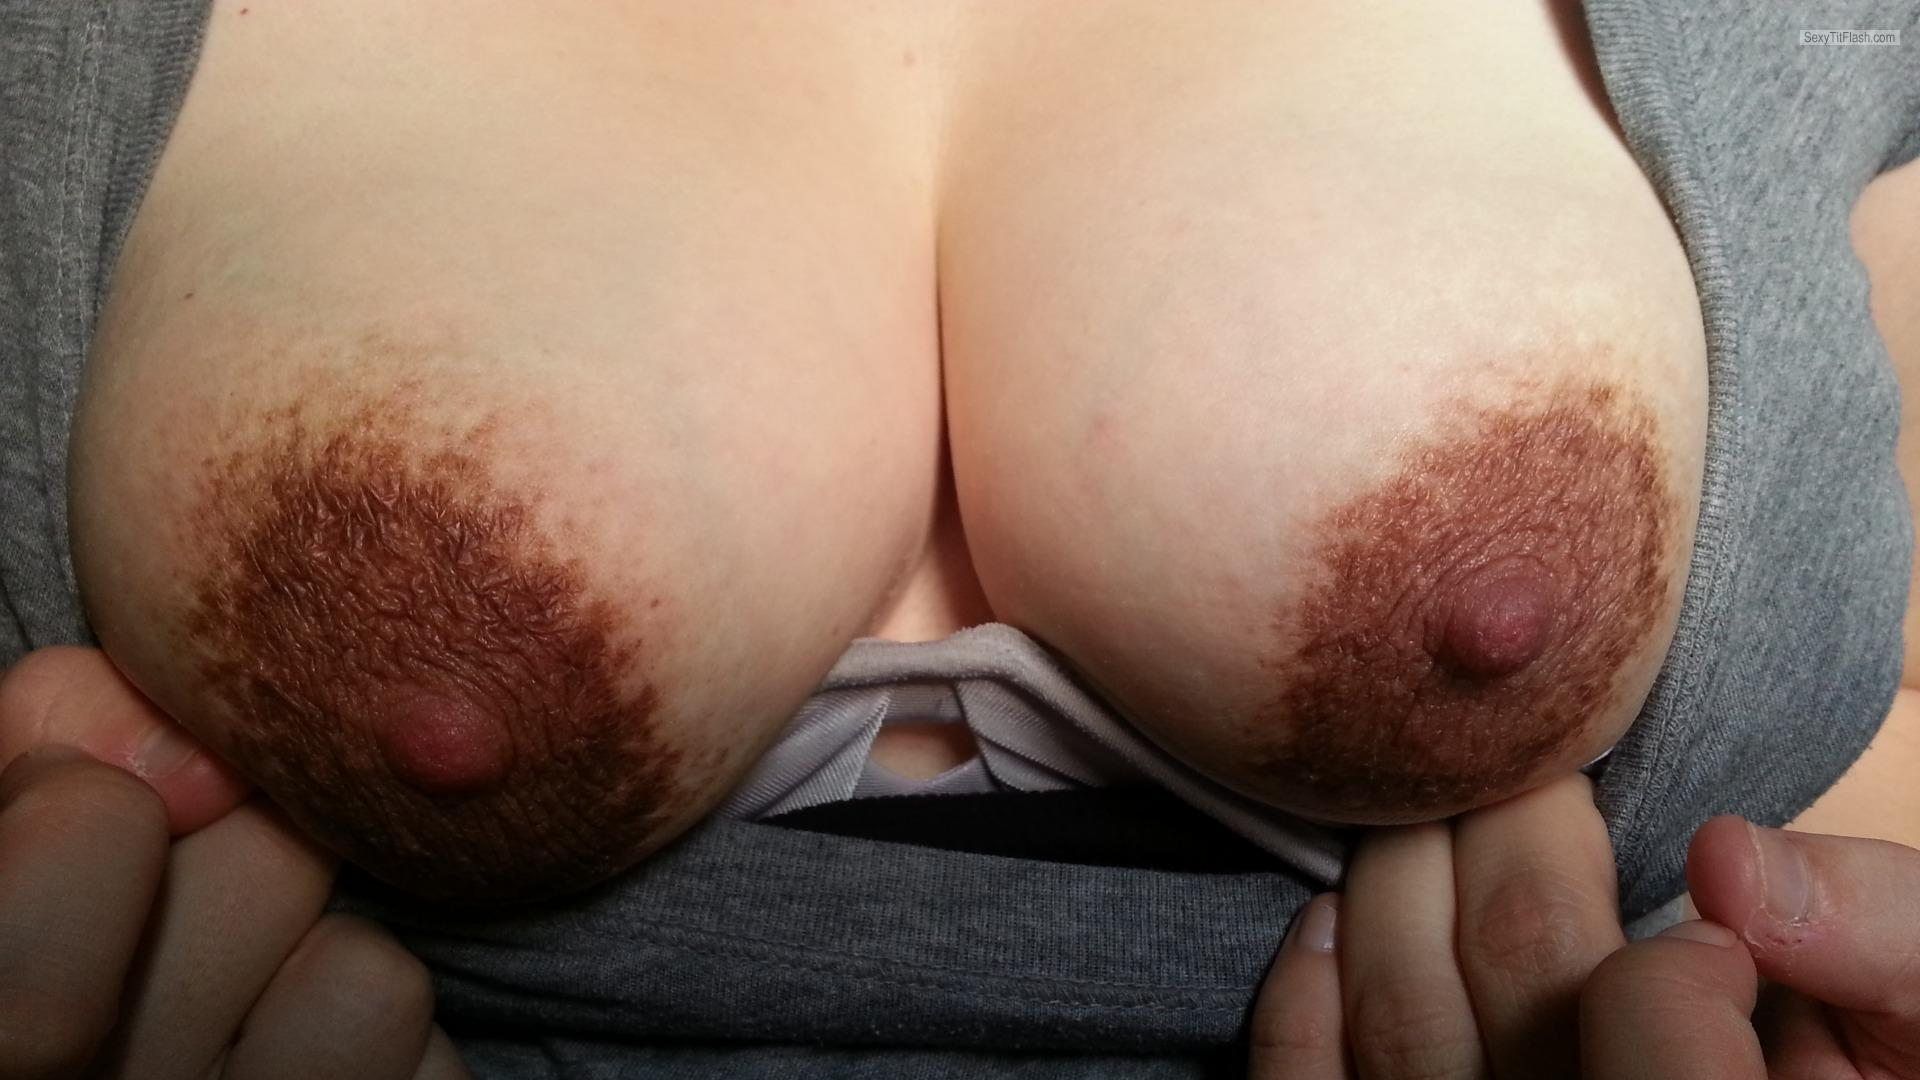 Medium Tits Of My Wife Rate These Great Tits